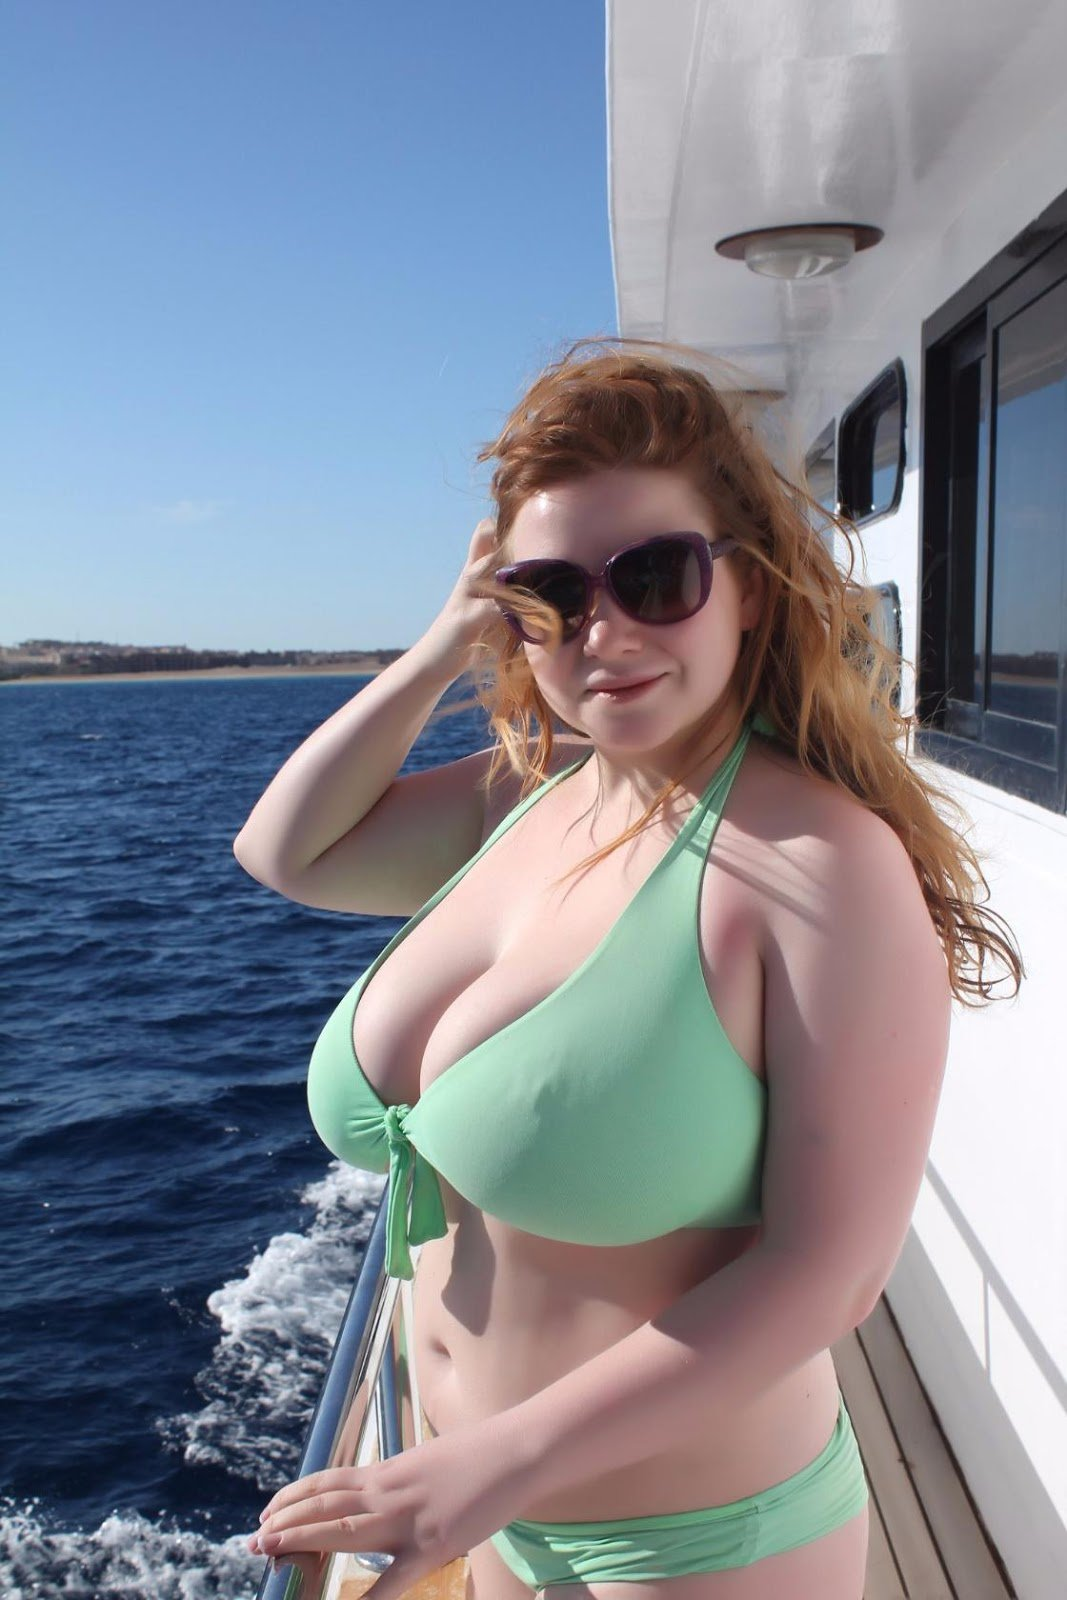 Sexy boobs hd images #9